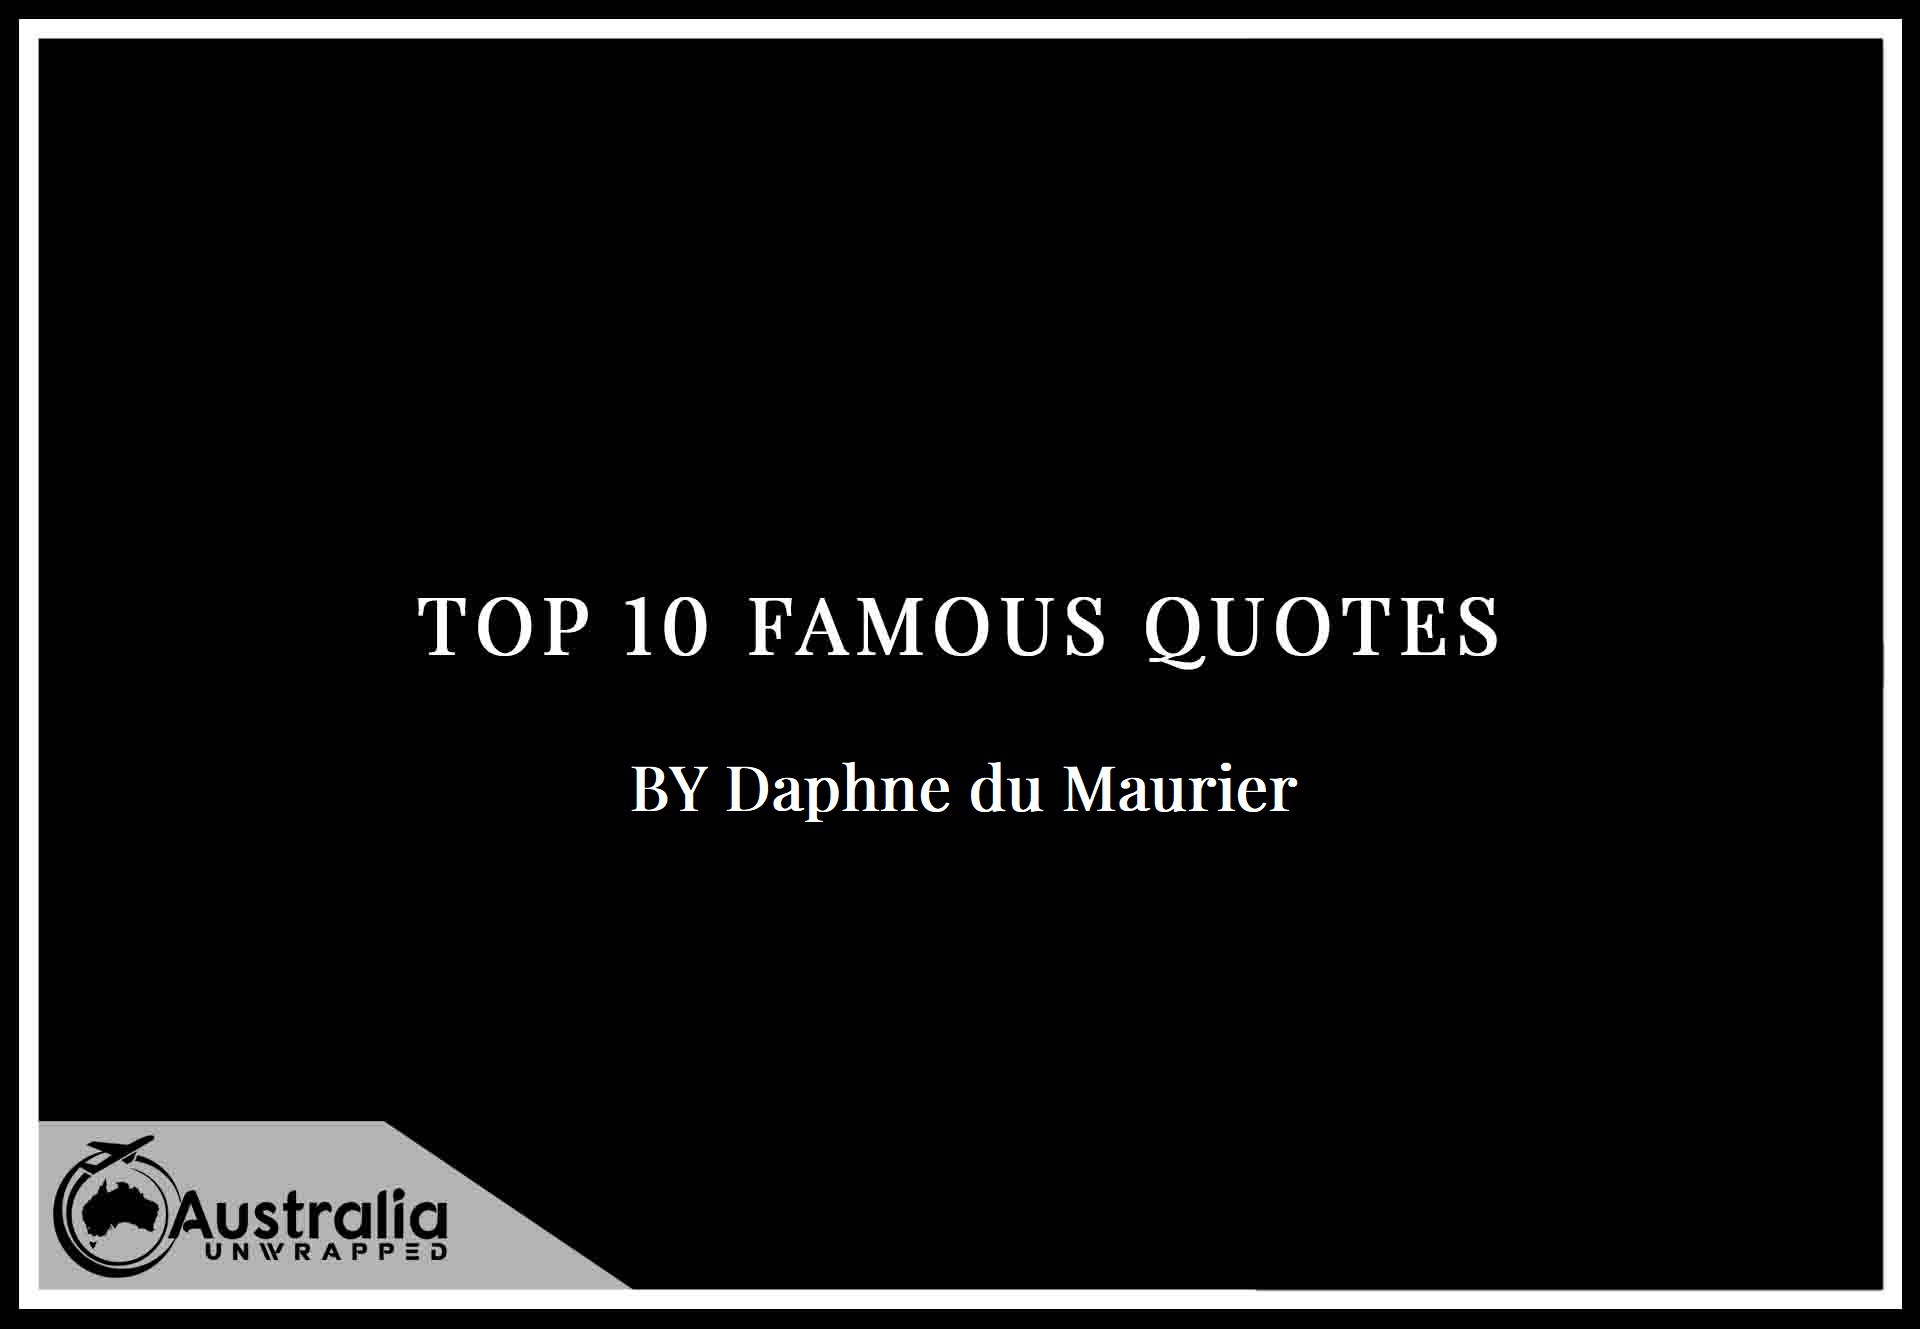 Top 10 Famous Quotes by Author Daphne du Maurier